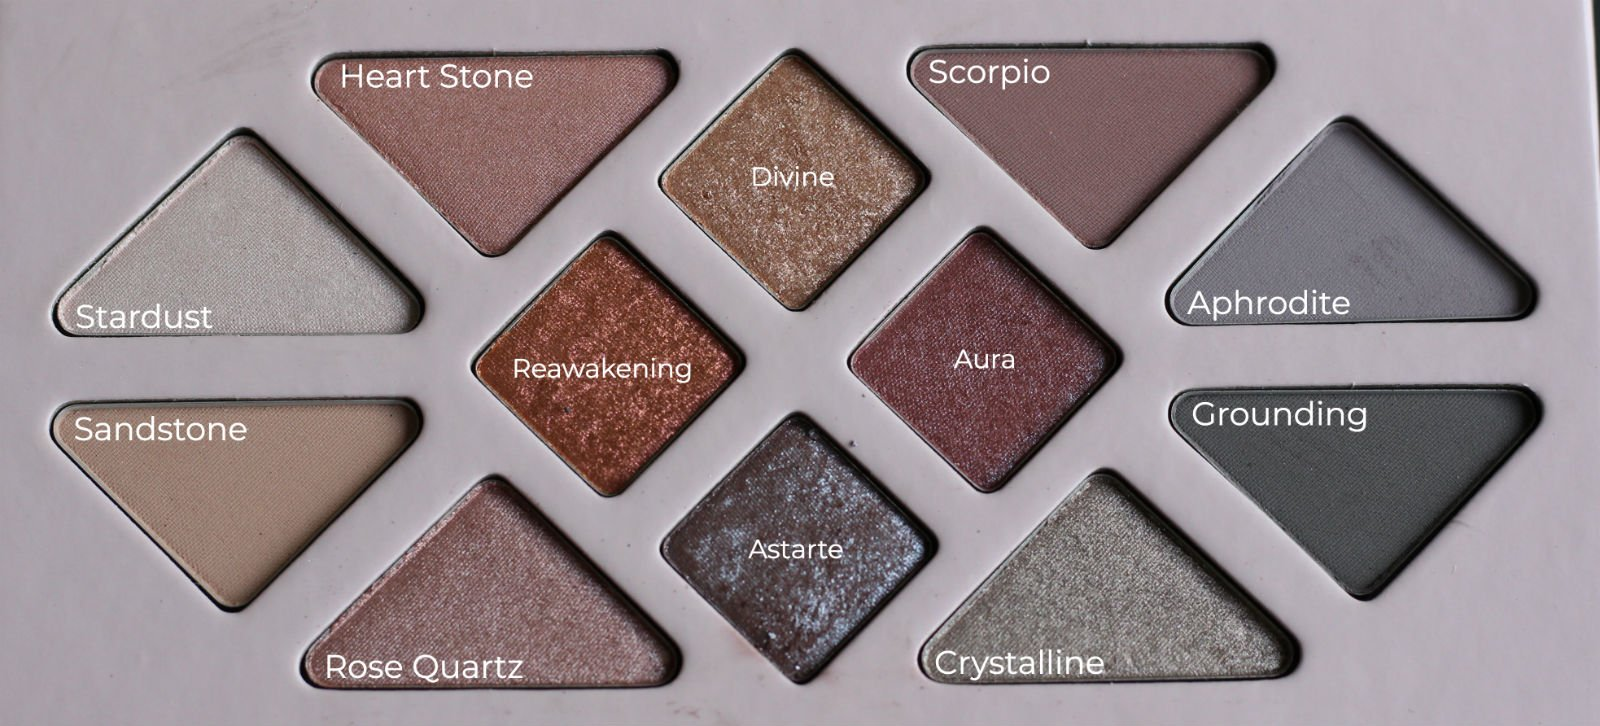 Aether Beauty Rose Quartz Palette shades